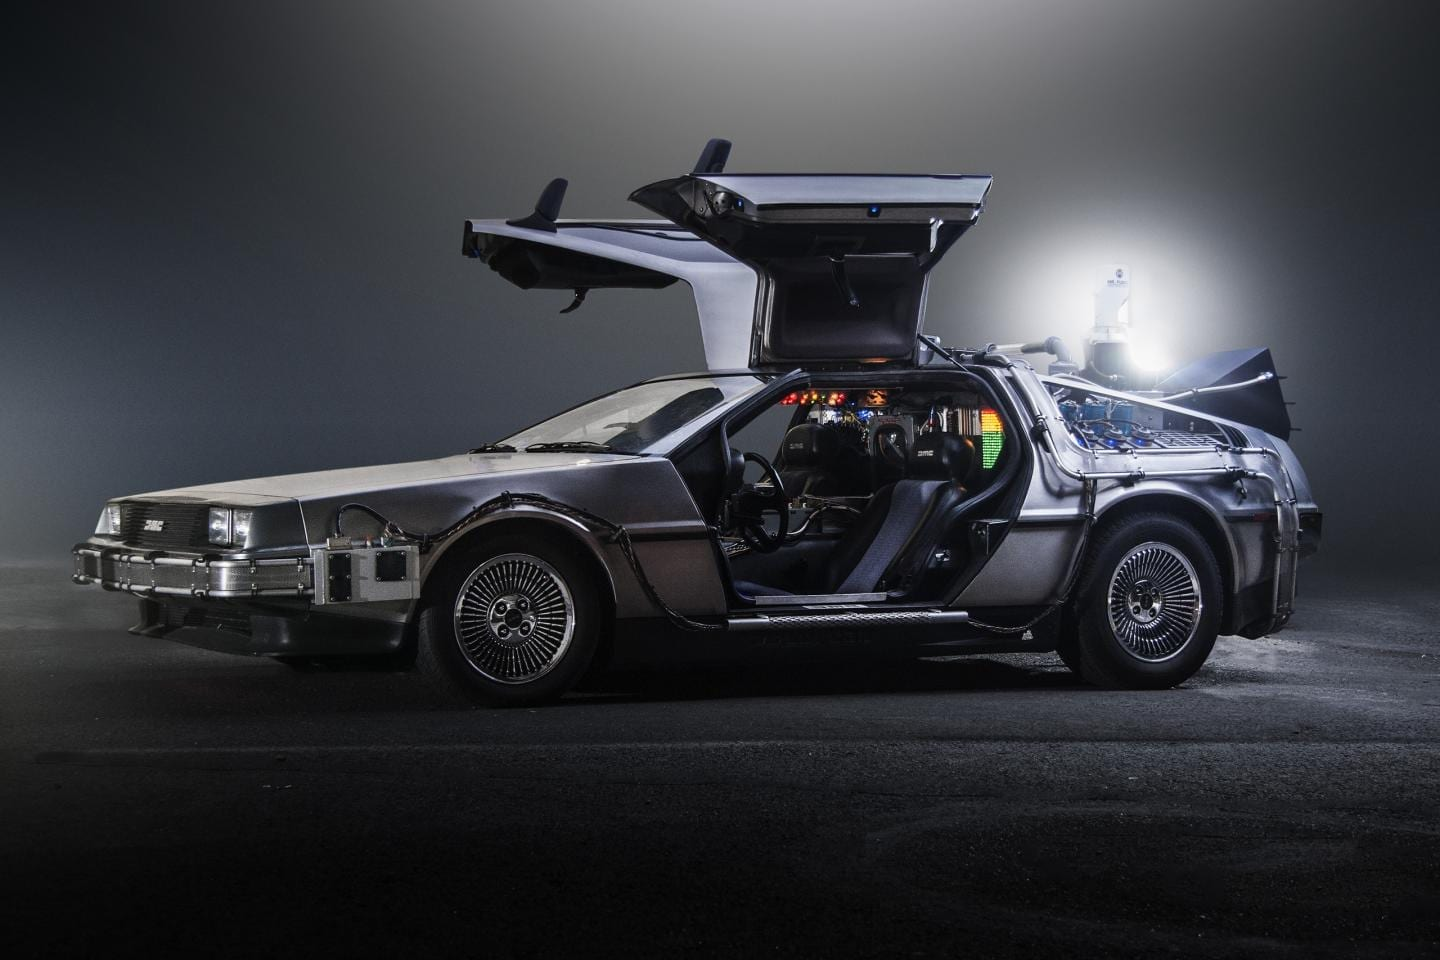 A futuristic car from the 1980s ... physicists seek to understand the Universe's underlying laws via University of Queensland